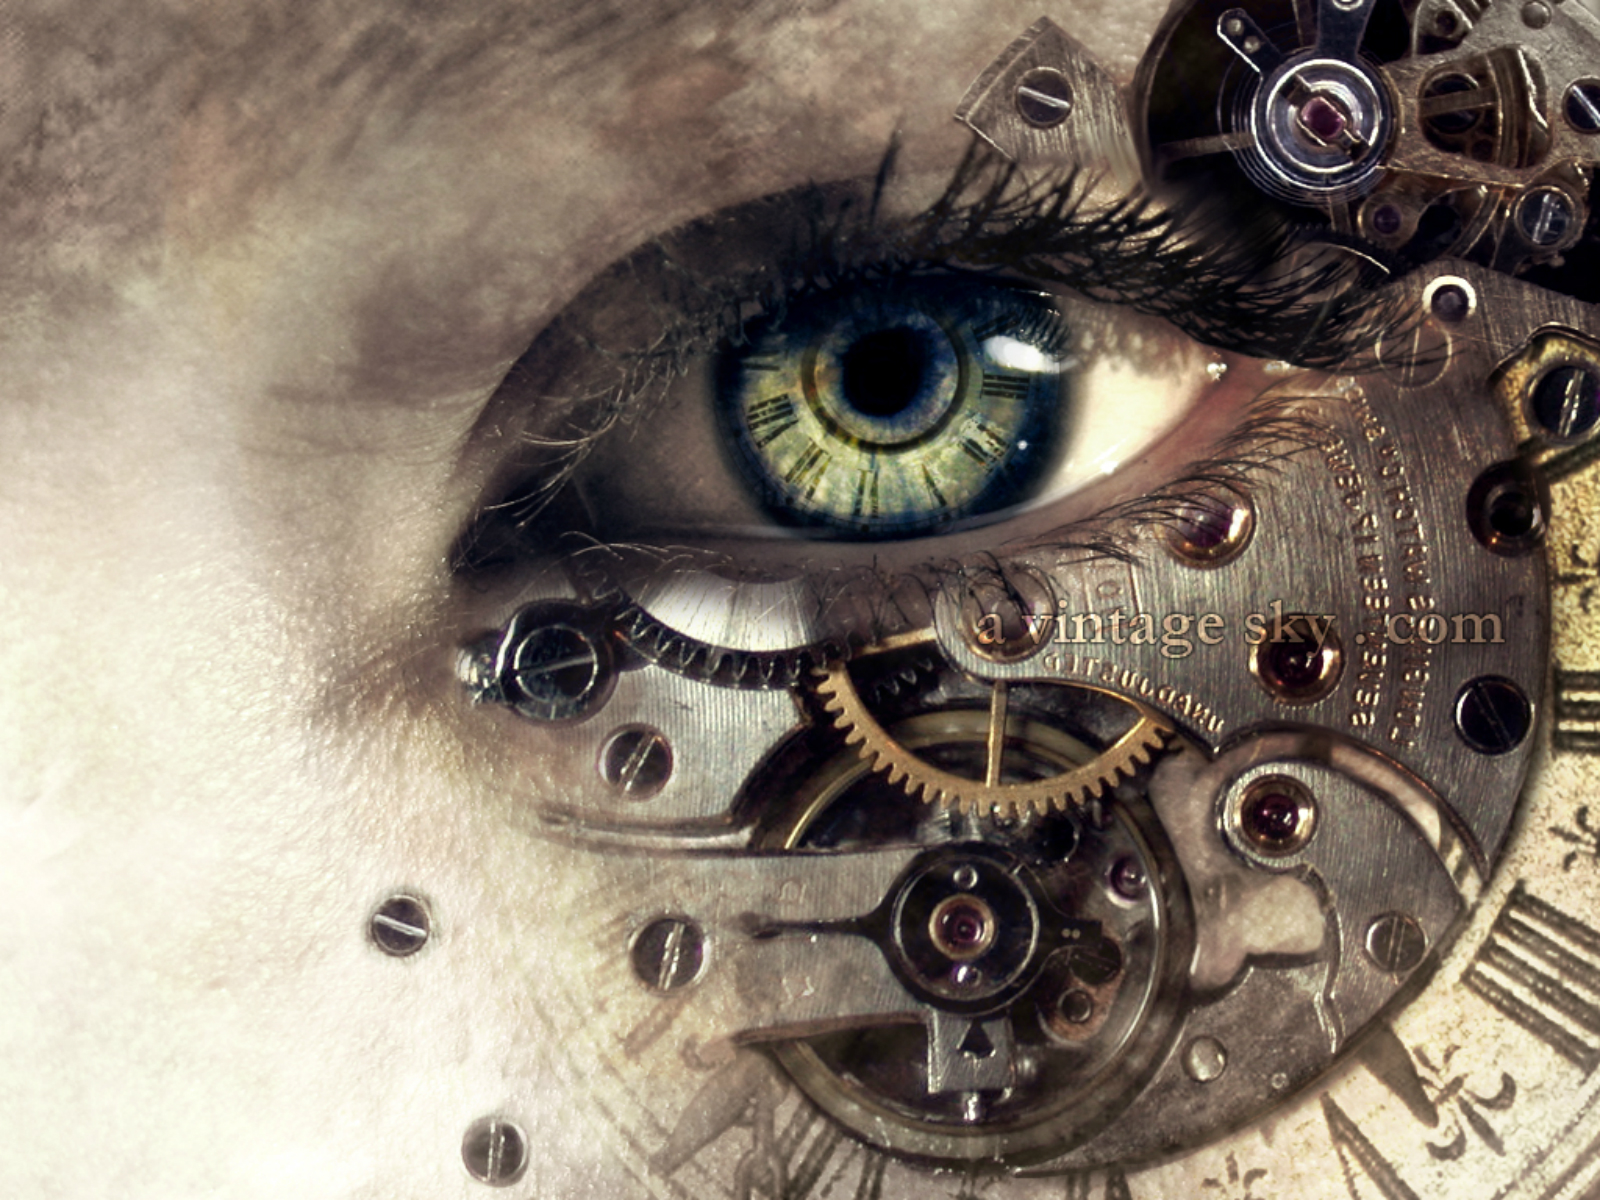 http://2.bp.blogspot.com/-CCkRdPSmUaw/Tlx836fdDCI/AAAAAAAAAwQ/bLzxZkvzbRw/s1600/steampunk_cyborg_artwork_background_www.Vvallpaper.net.jpg